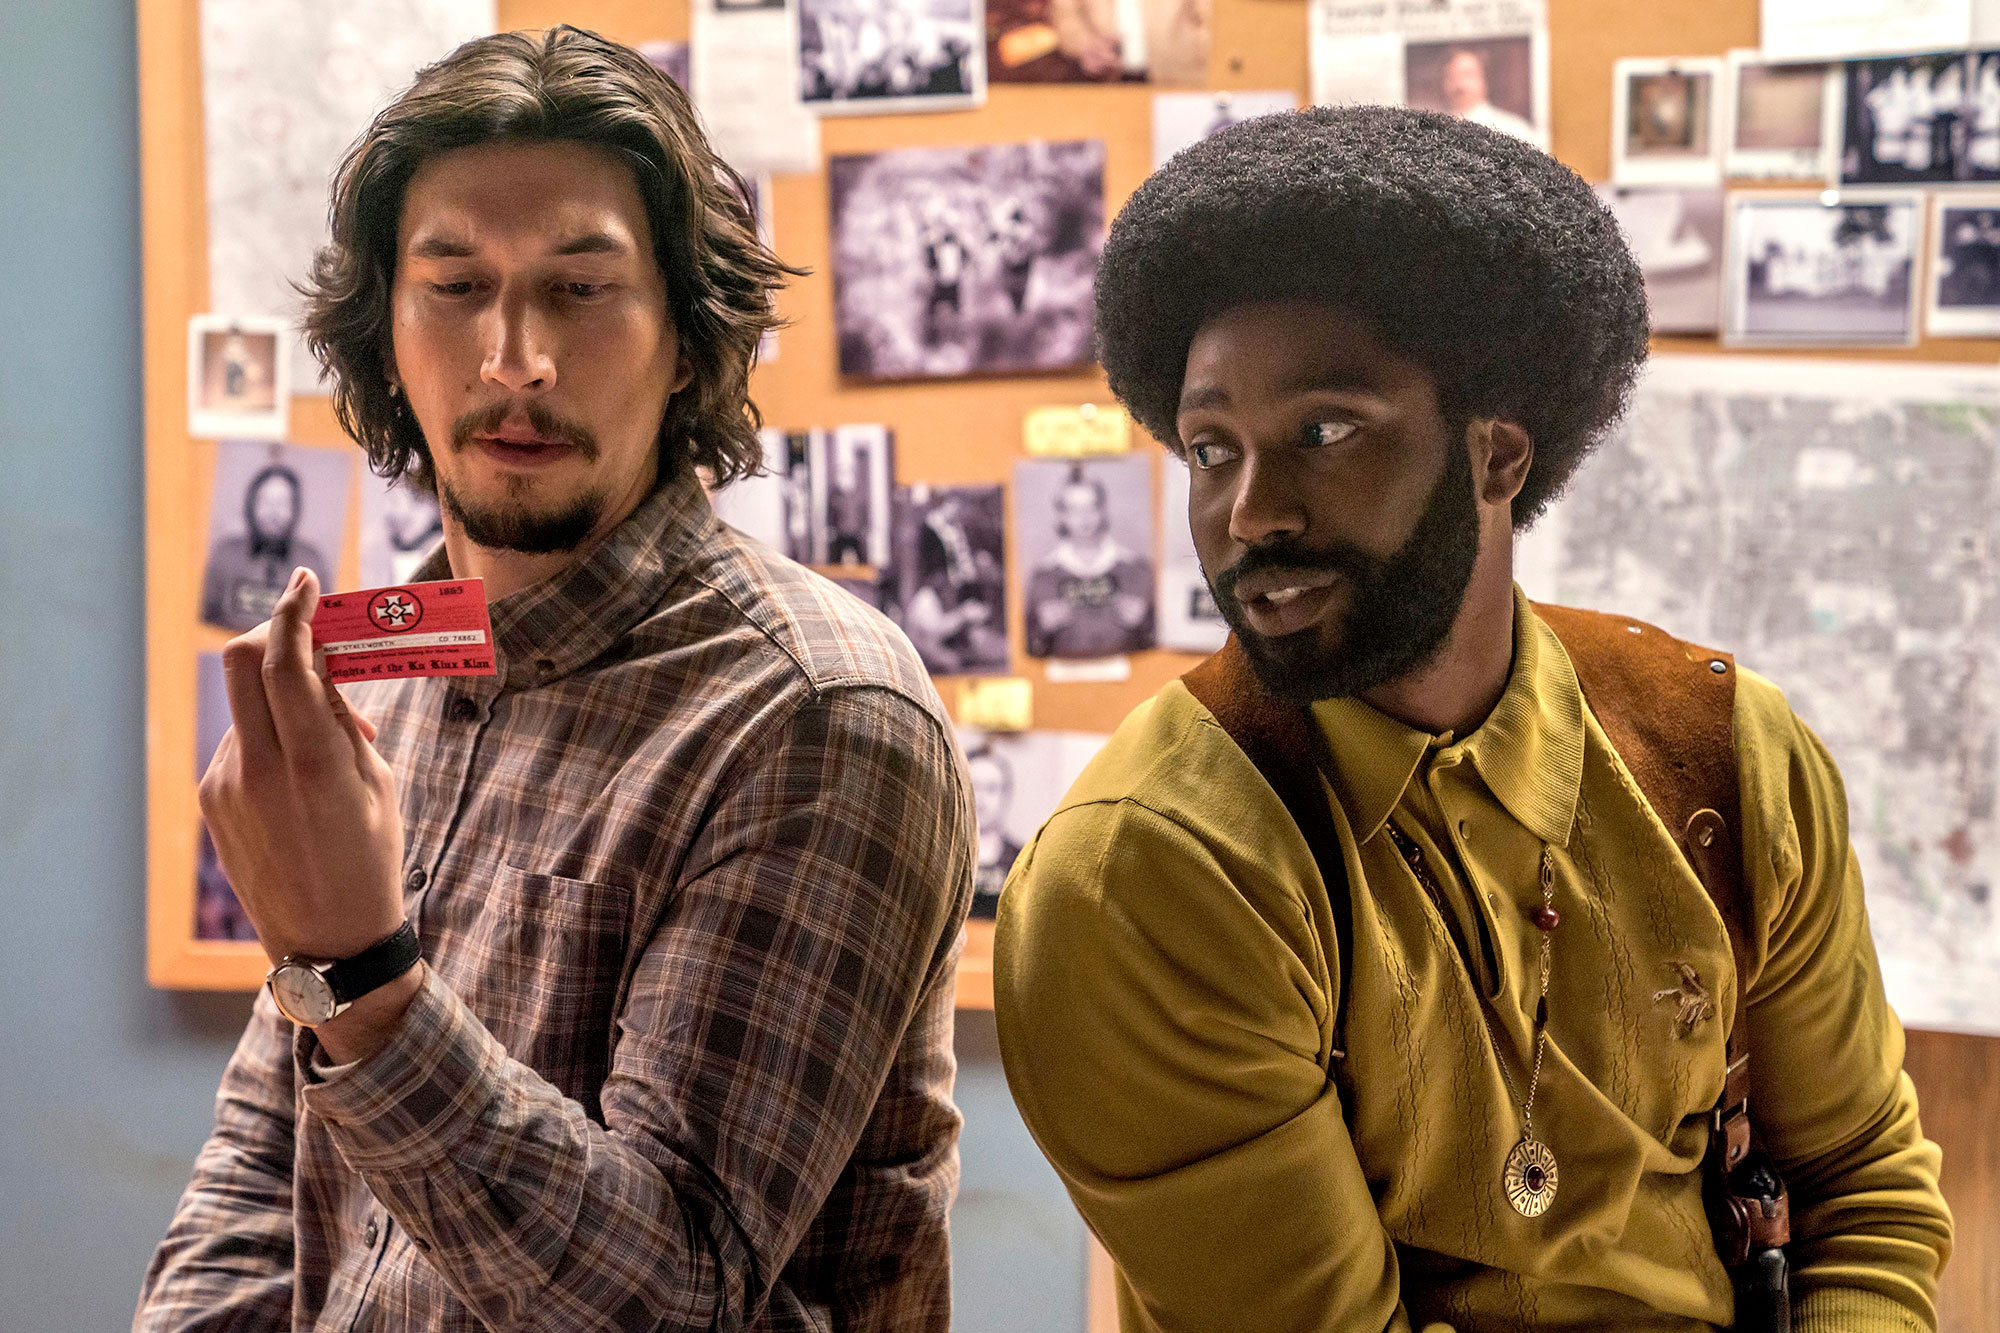 """Oscars 2019 BlacKkKlansman Best Adapted Screenplay - """"The Ballad of Buster Scruggs,"""" Joel Coen , Ethan Coen """"BlacKkKlansman,"""" Charlie Wachtel, David Rabinowitz, Kevin Willmott, Spike Lee """"Can You Ever Forgive Me?,"""" Nicole Holofcener and Jeff Whitty """"If Beale Street Could Talk,"""" Barry Jenkins """"A Star Is Born,"""" Eric Roth, Bradley Cooper, Will Fetters"""